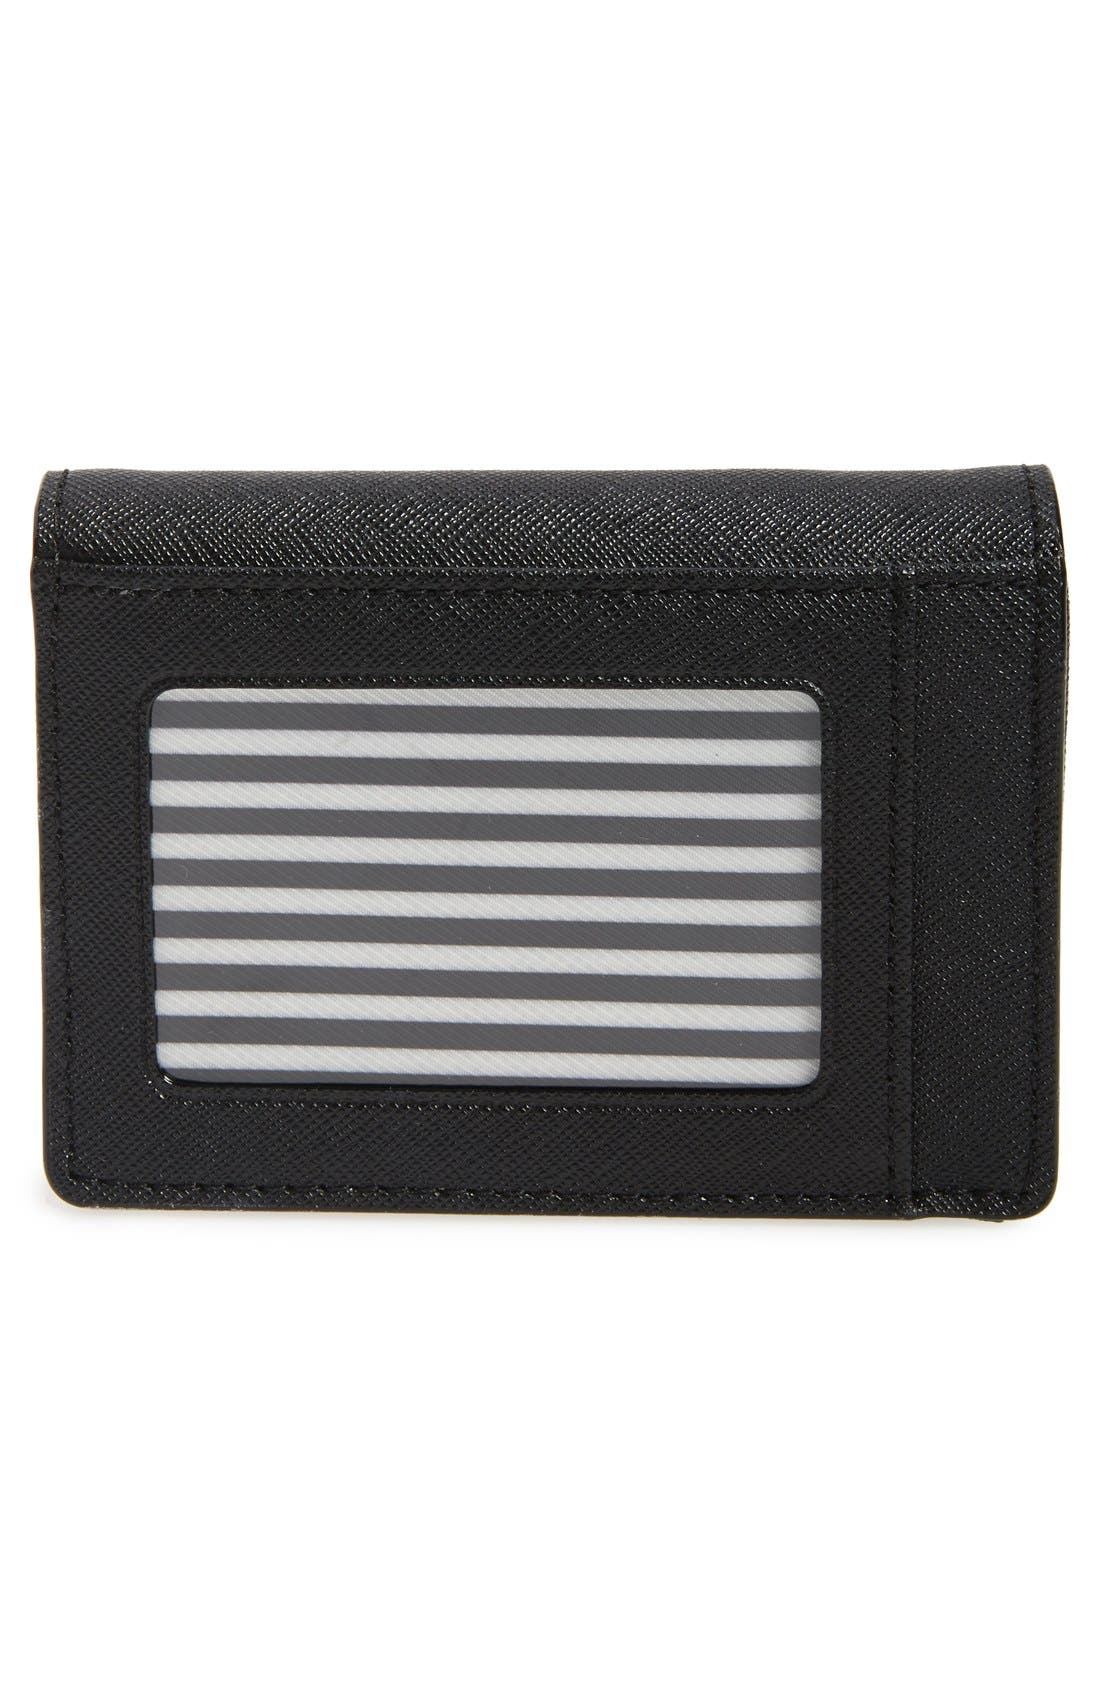 KATE SPADE NEW YORK,                             'cameron street - beca' textured leather wallet,                             Alternate thumbnail 4, color,                             001